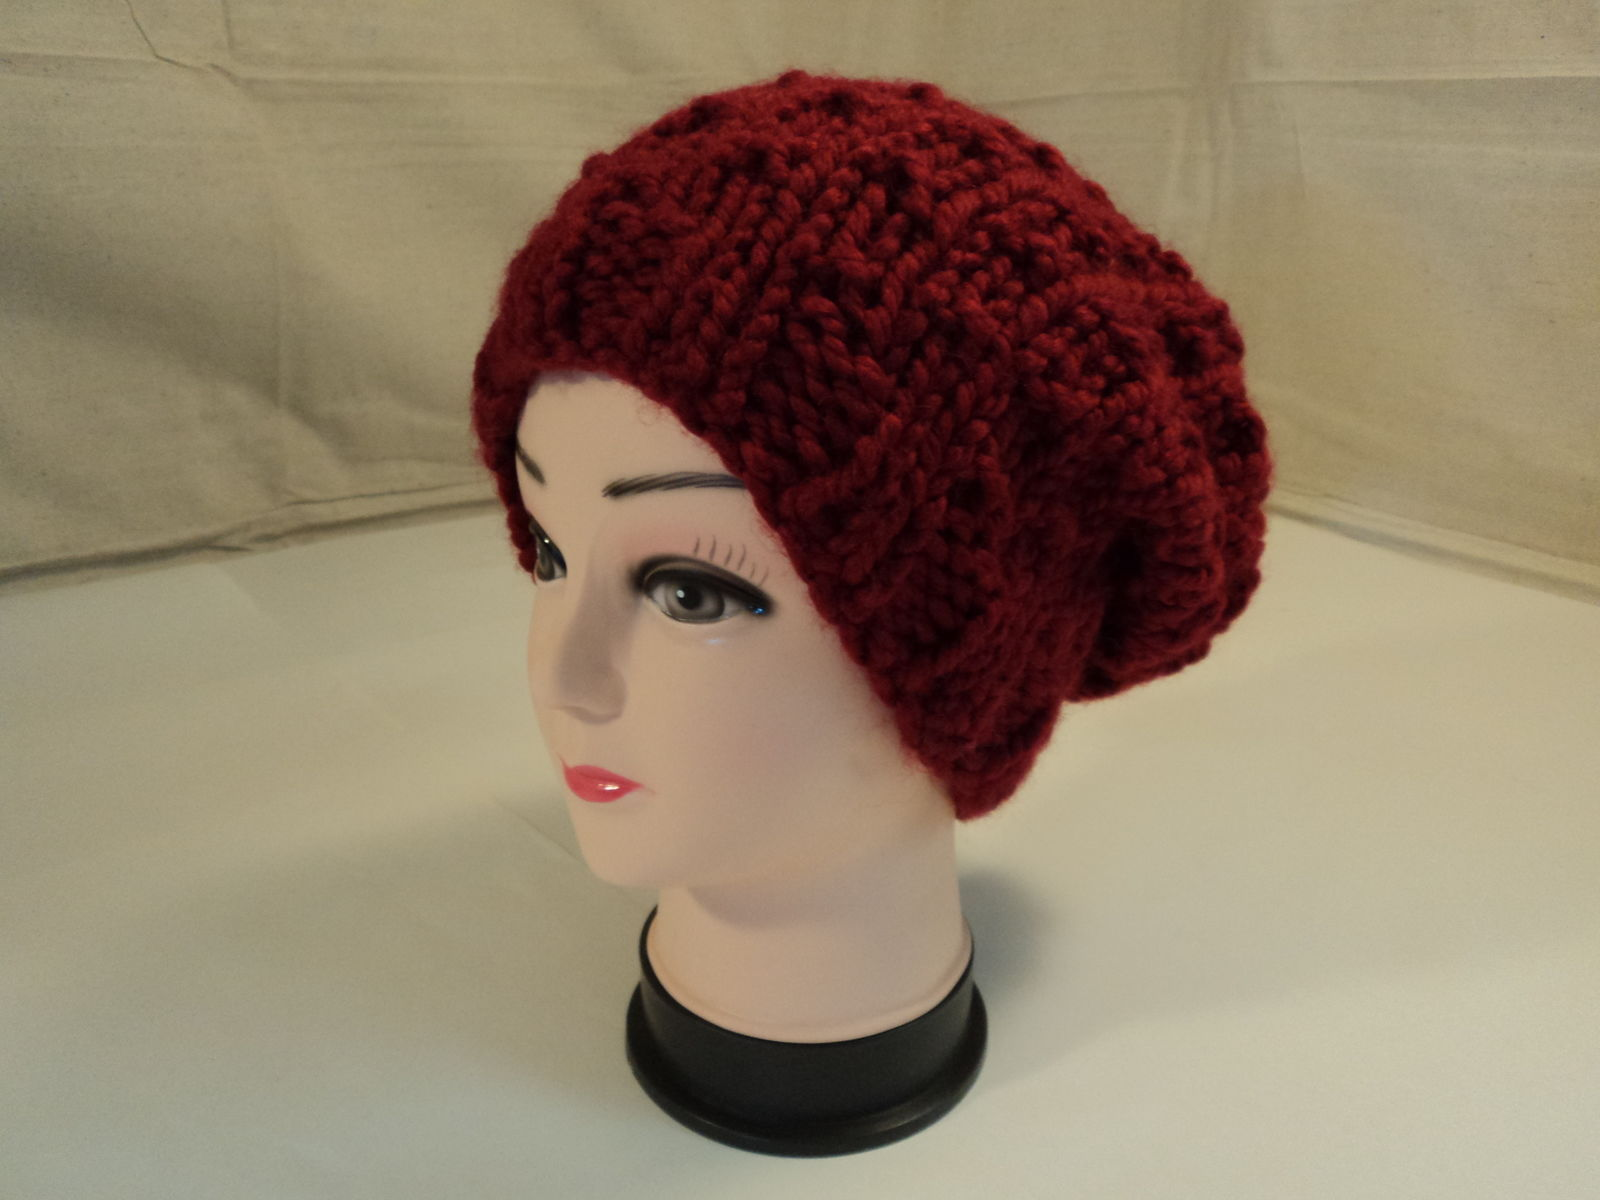 Handcrafted Bulky Slouchy Hat Red Textured Acrylic Wool Mix Female Adult